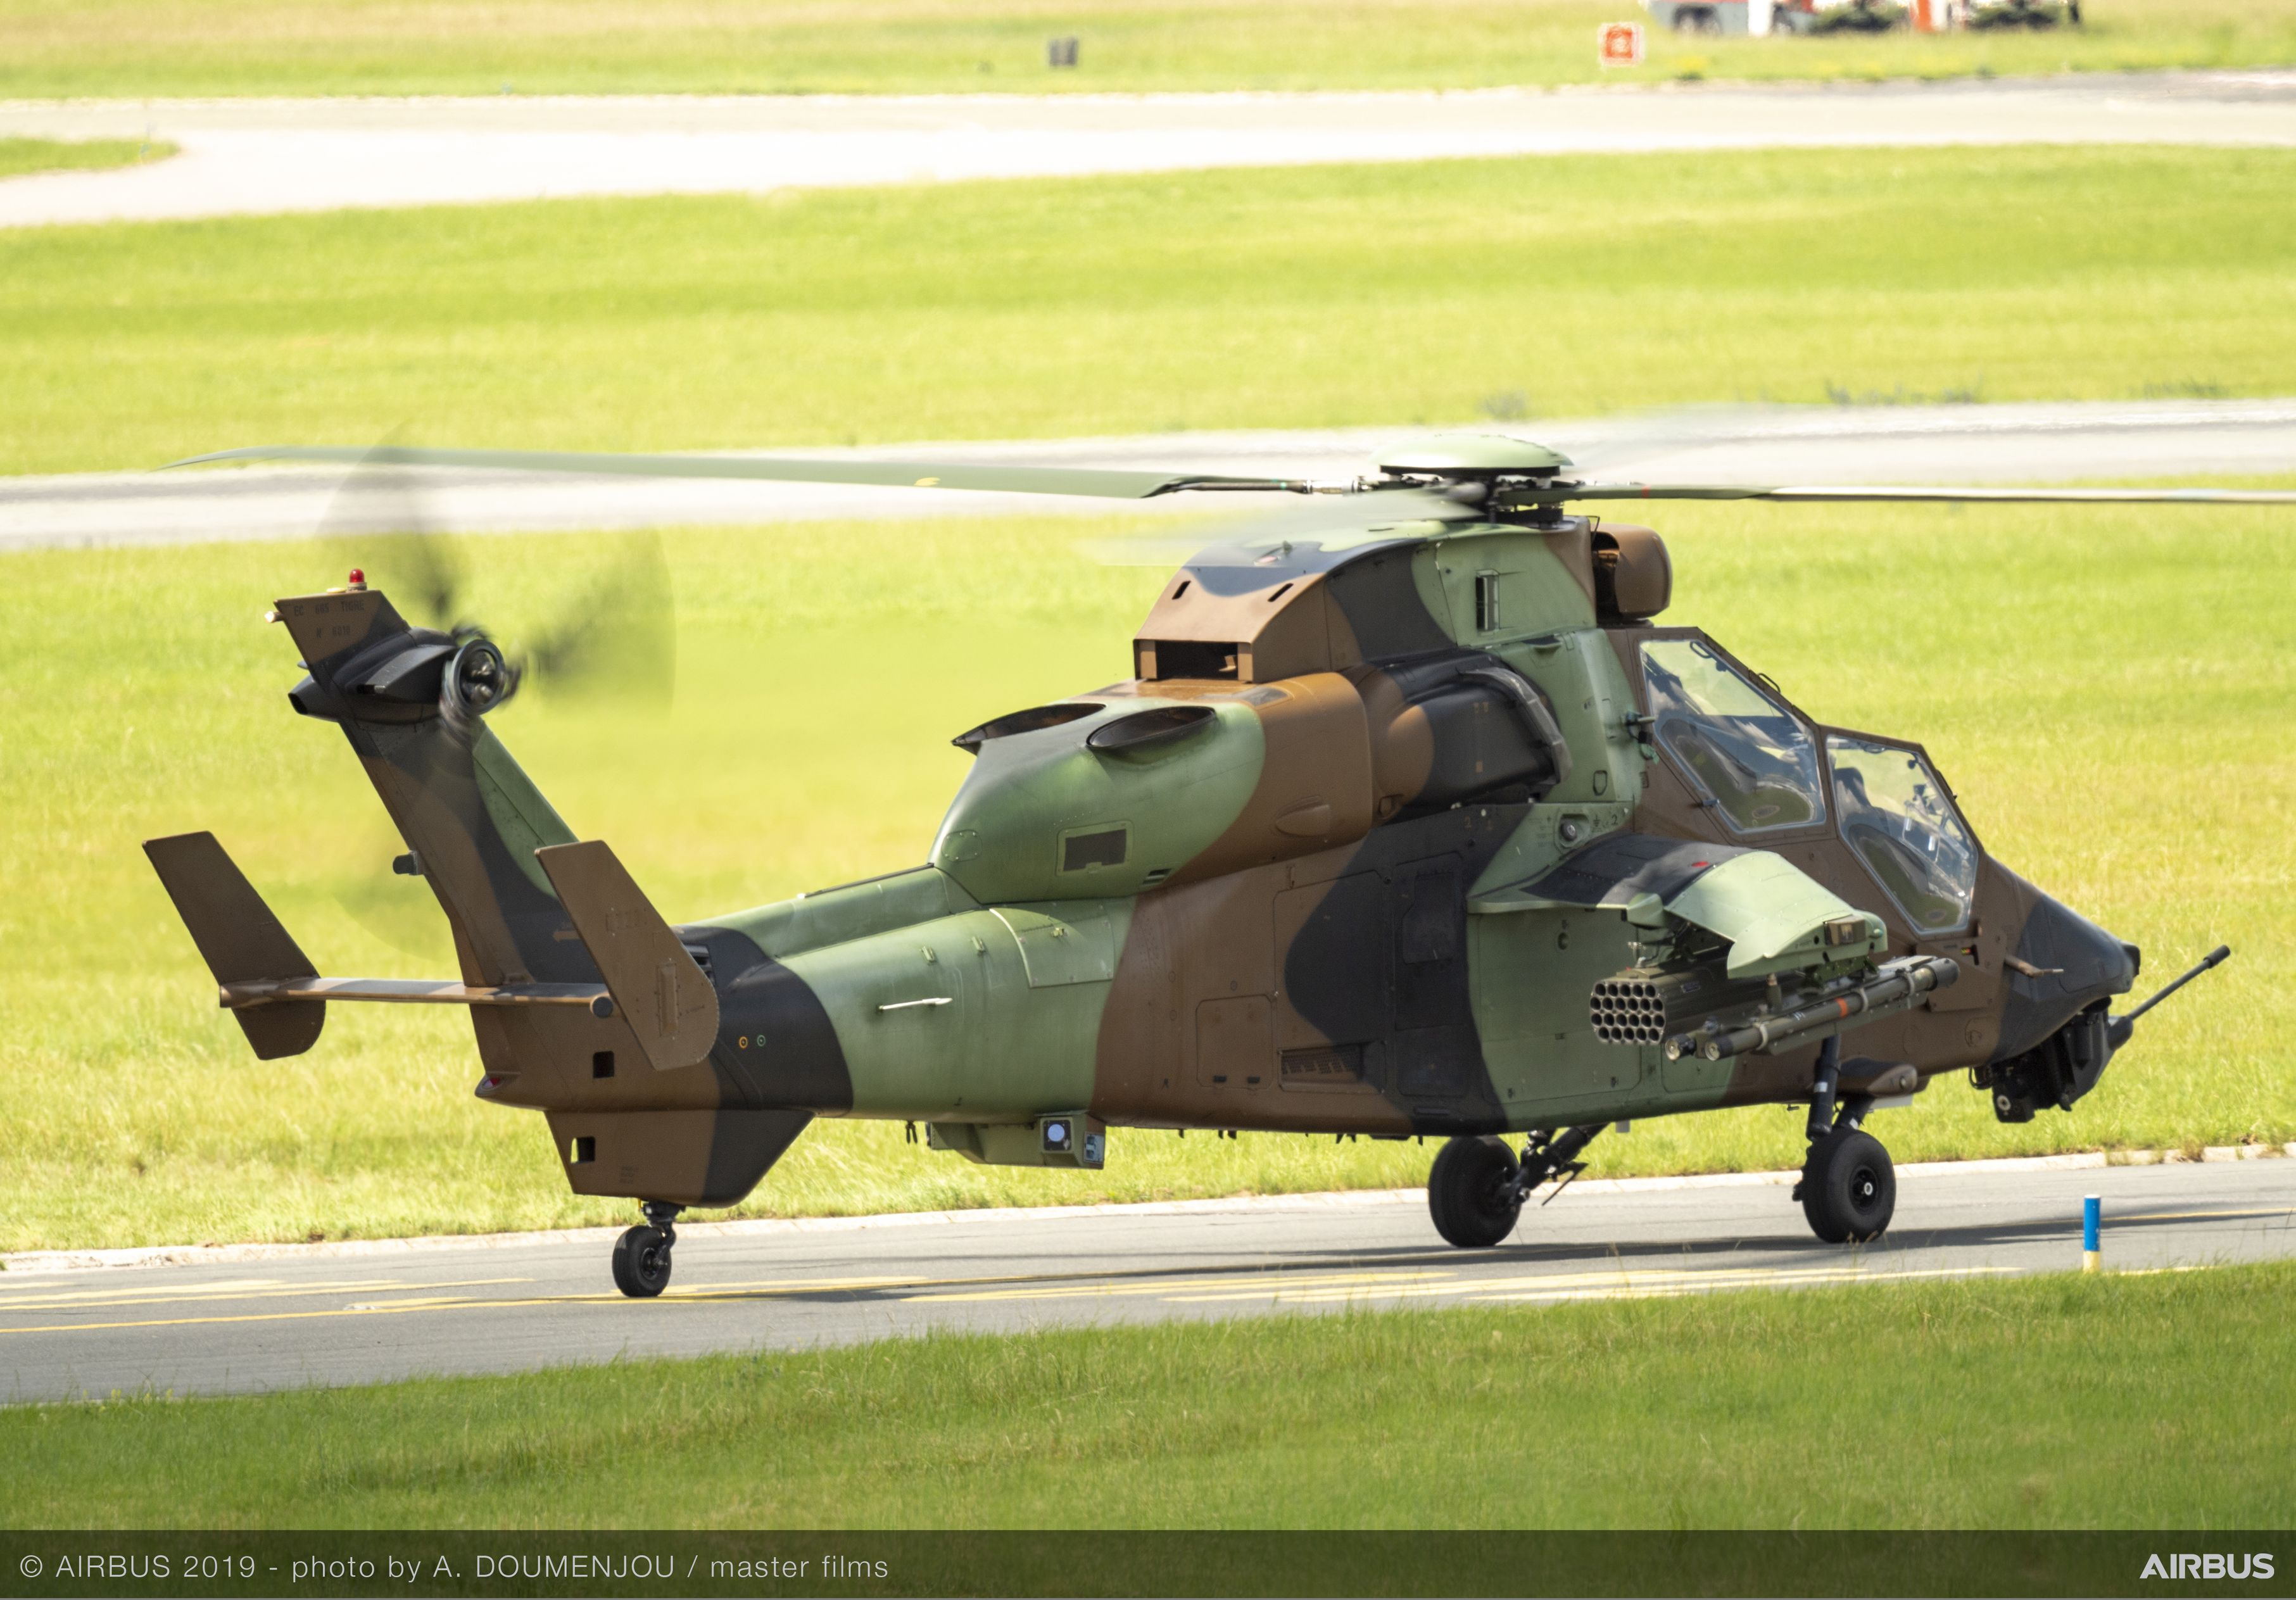 Helicopters News - News by Market - Airbus